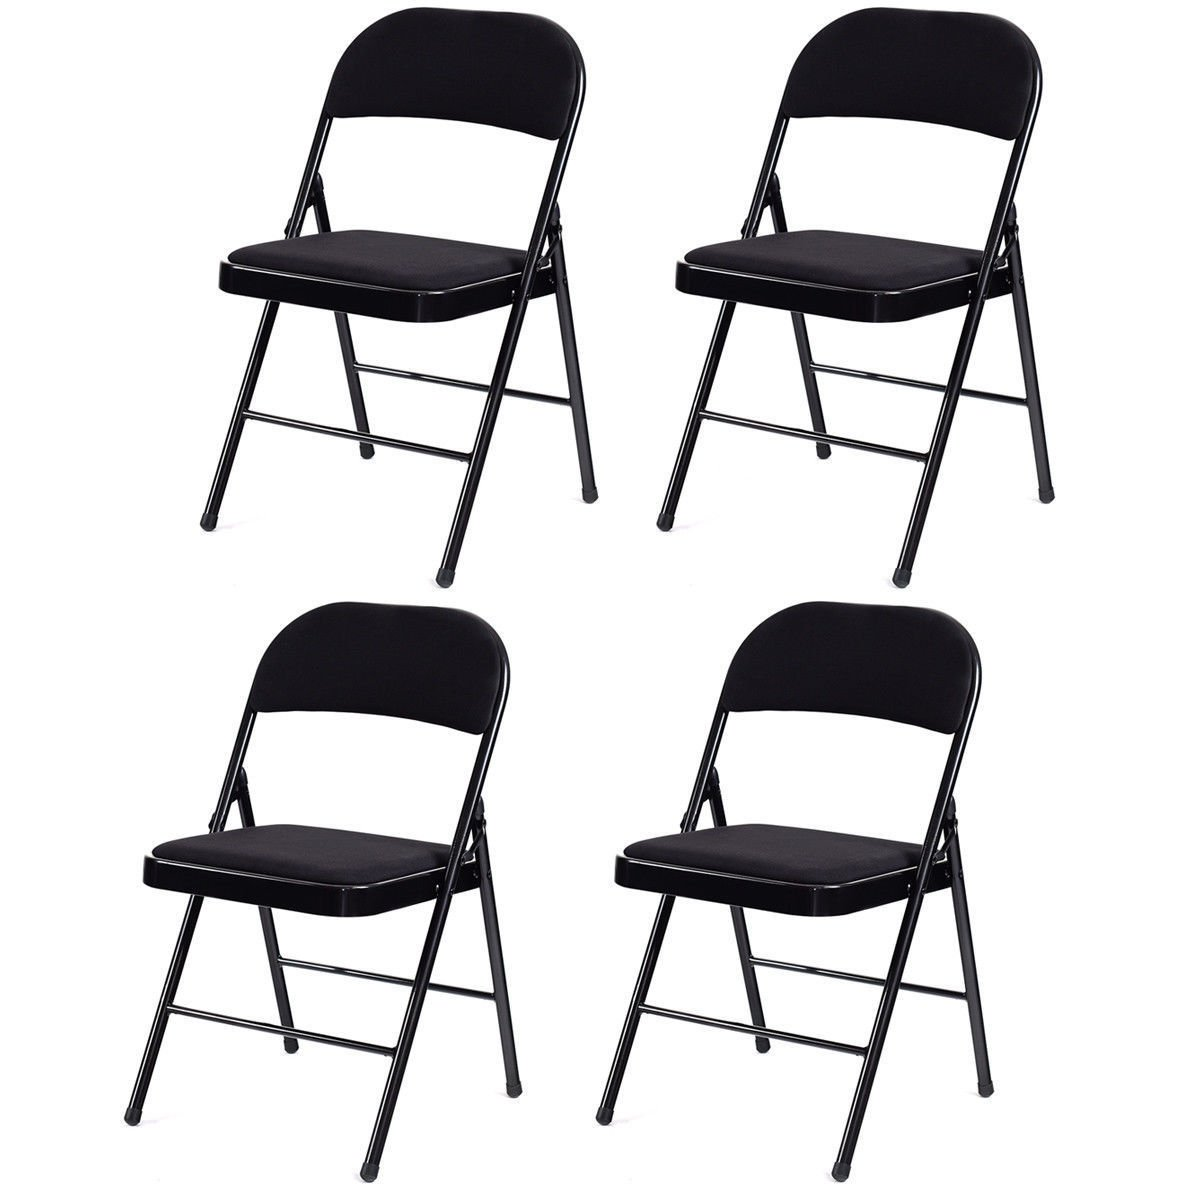 Giantex Set of 4 Folding Chairs Fabric Upholstered Padded Seat Metal Frame Home Office Furniture, Black